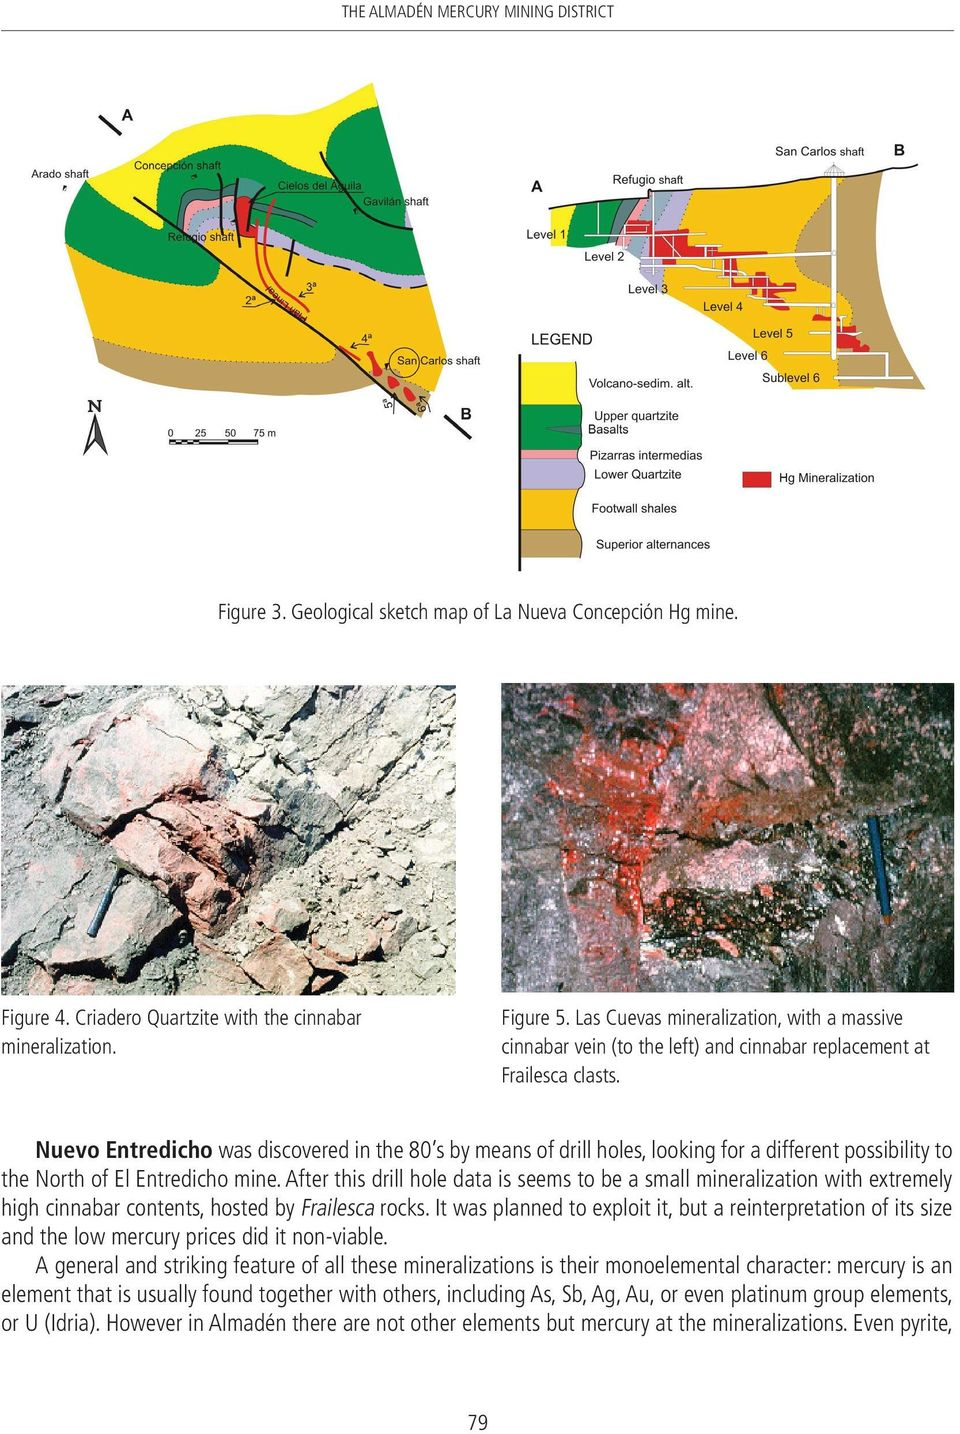 Nuevo Entredicho was discovered in the 80 s by means of drill holes, looking for a different possibility to the North of El Entredicho mine.